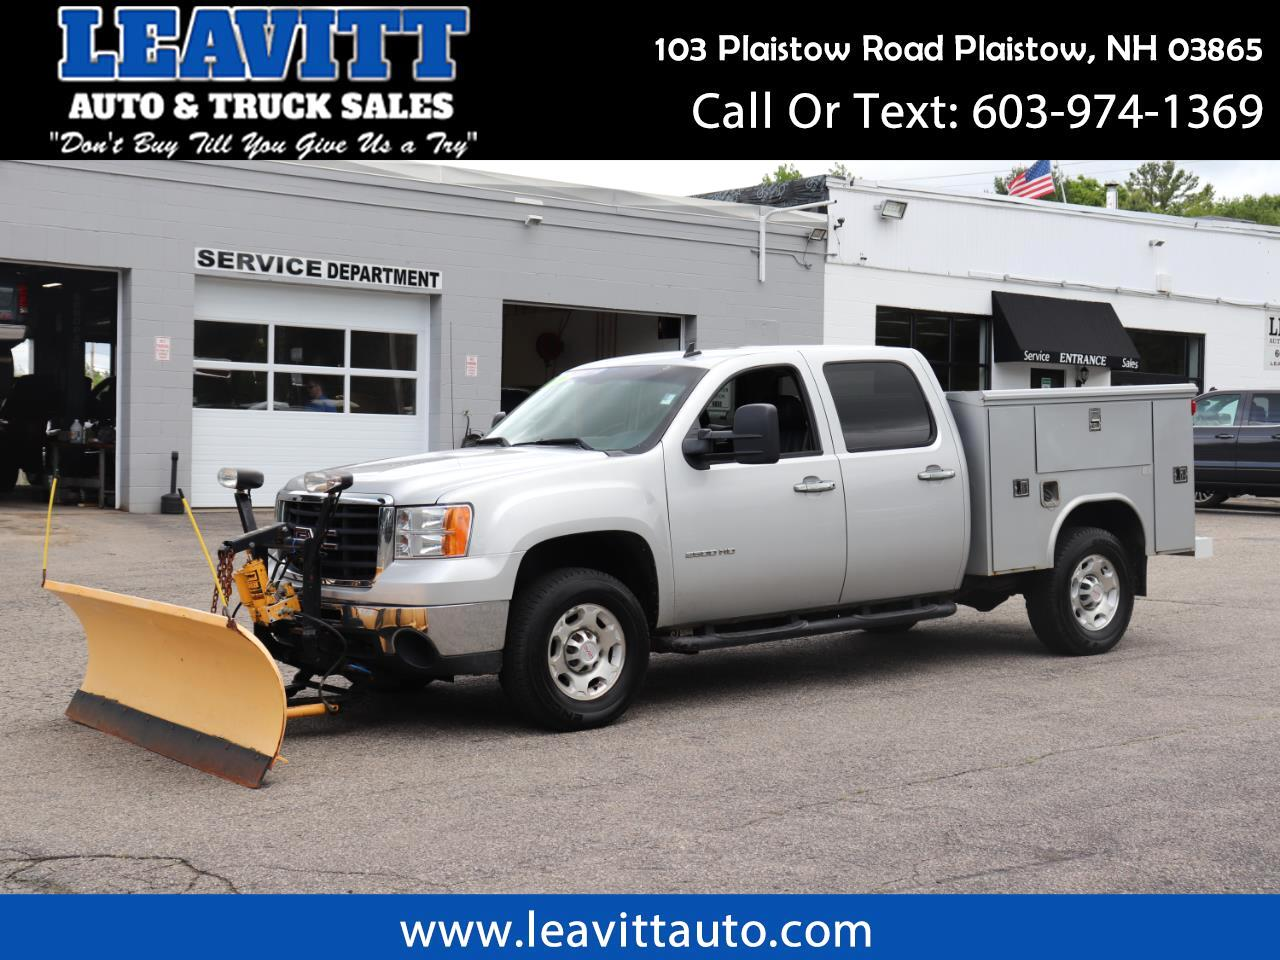 2010 GMC Sierra 2500HD UTILITY CREW CAB 4X4 LEATHER W/PLOW!